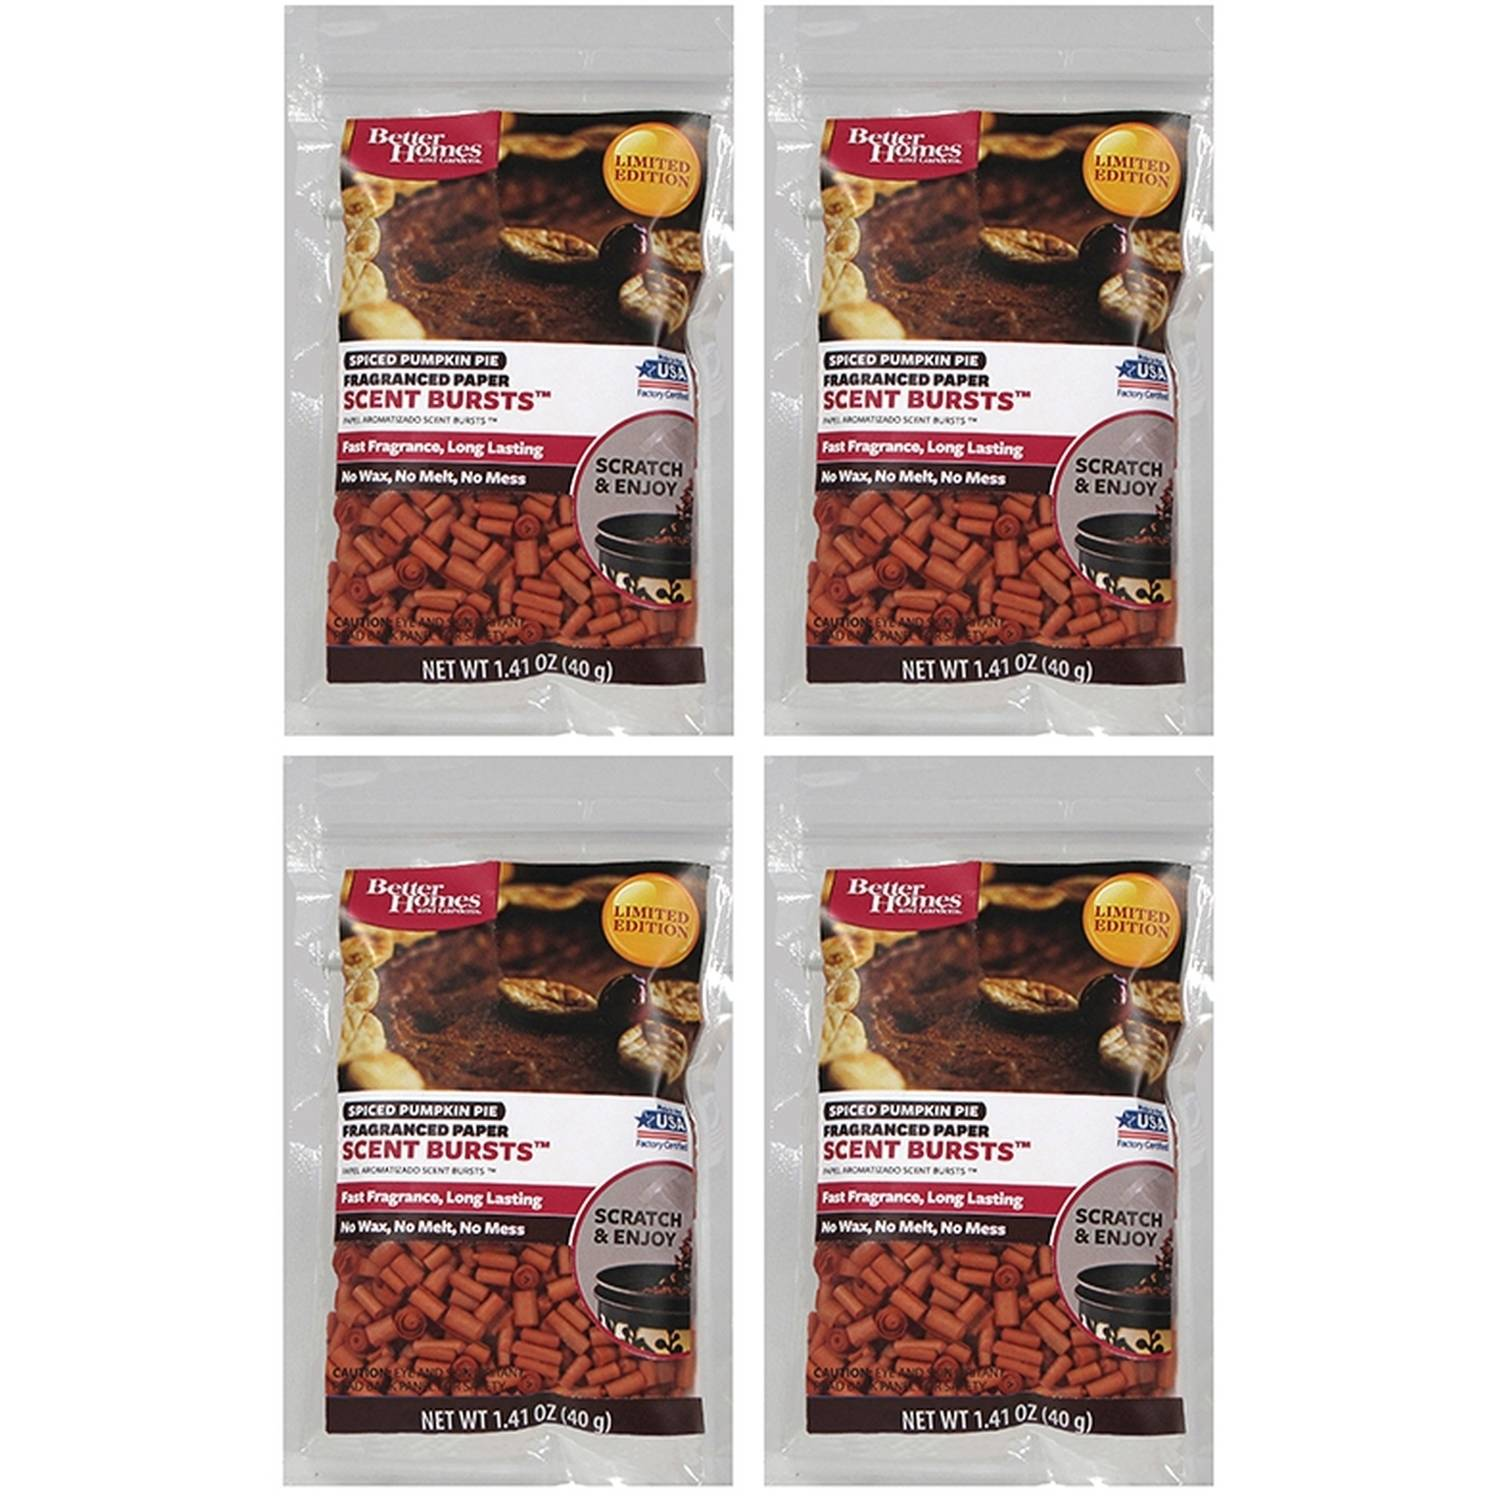 Better Homes And Gardens 4pk Scent Bursts SPICED PUMPKIN PIE